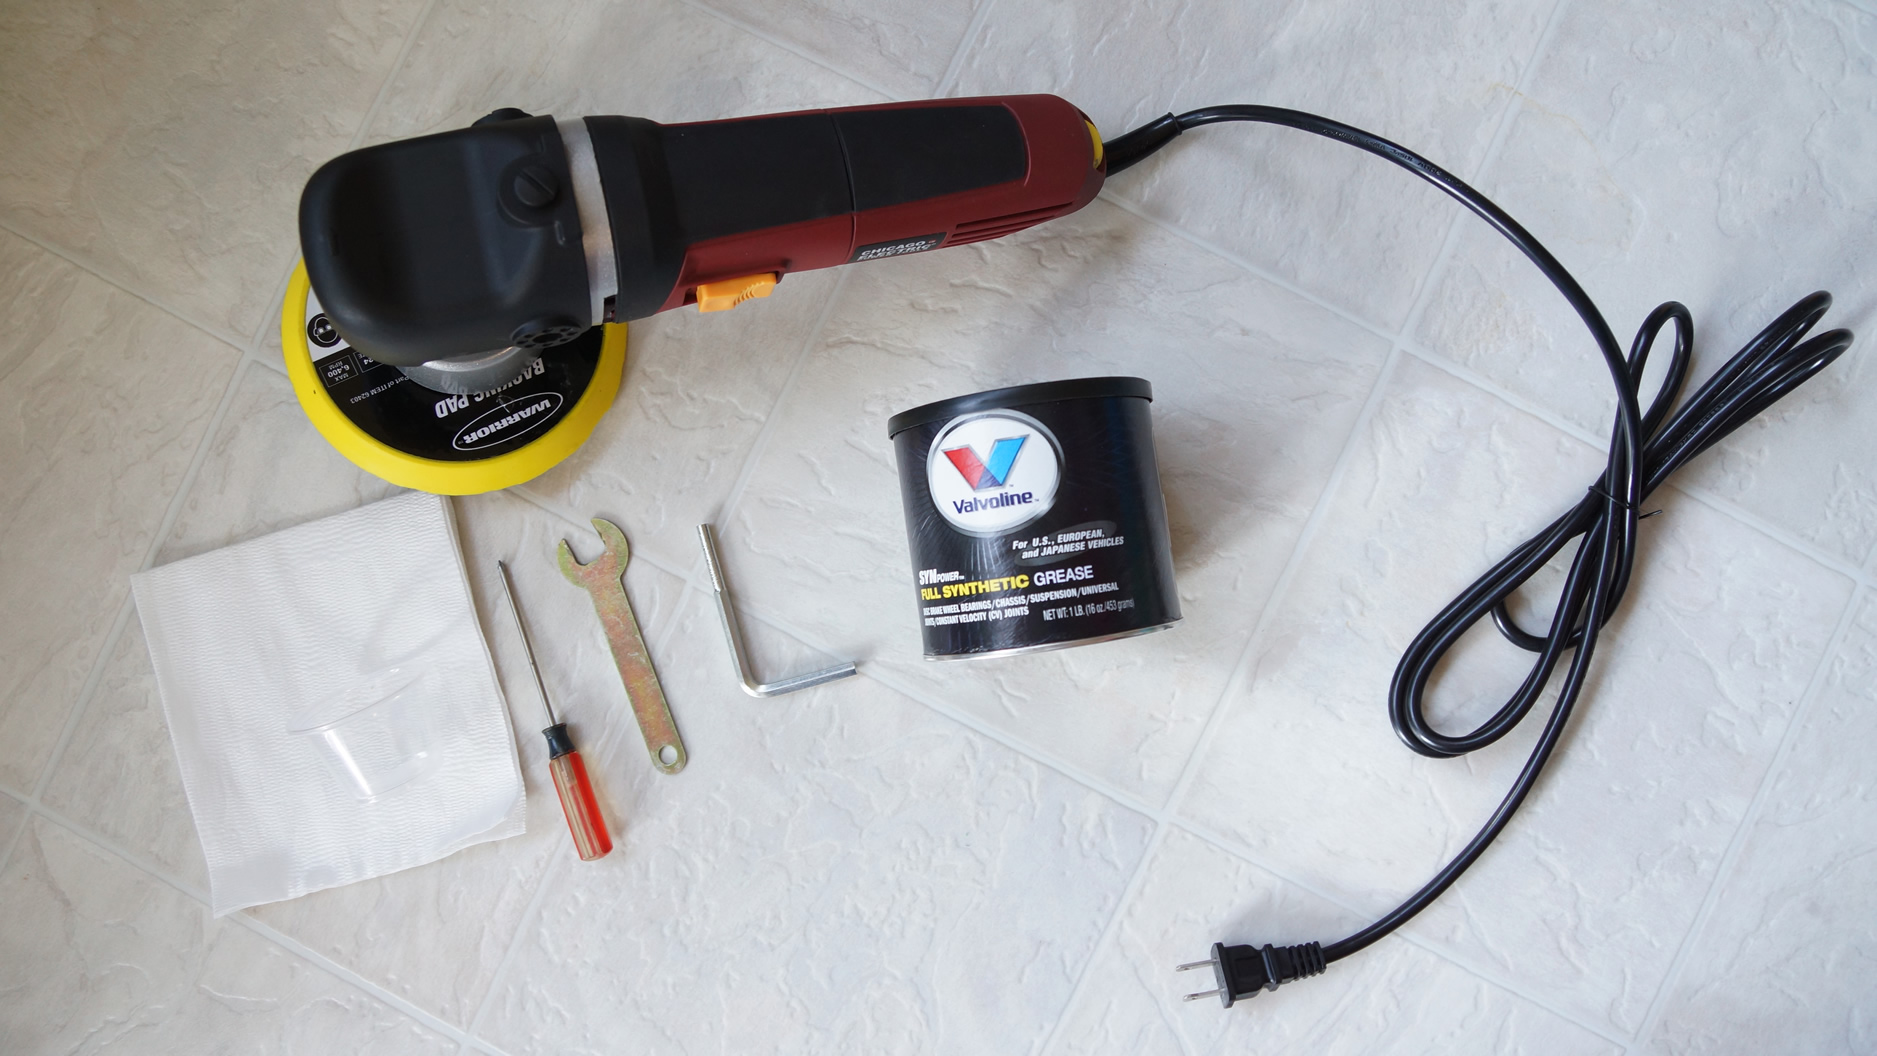 10 Steps to Replacing the Stock Grease in Harbor Freight DA